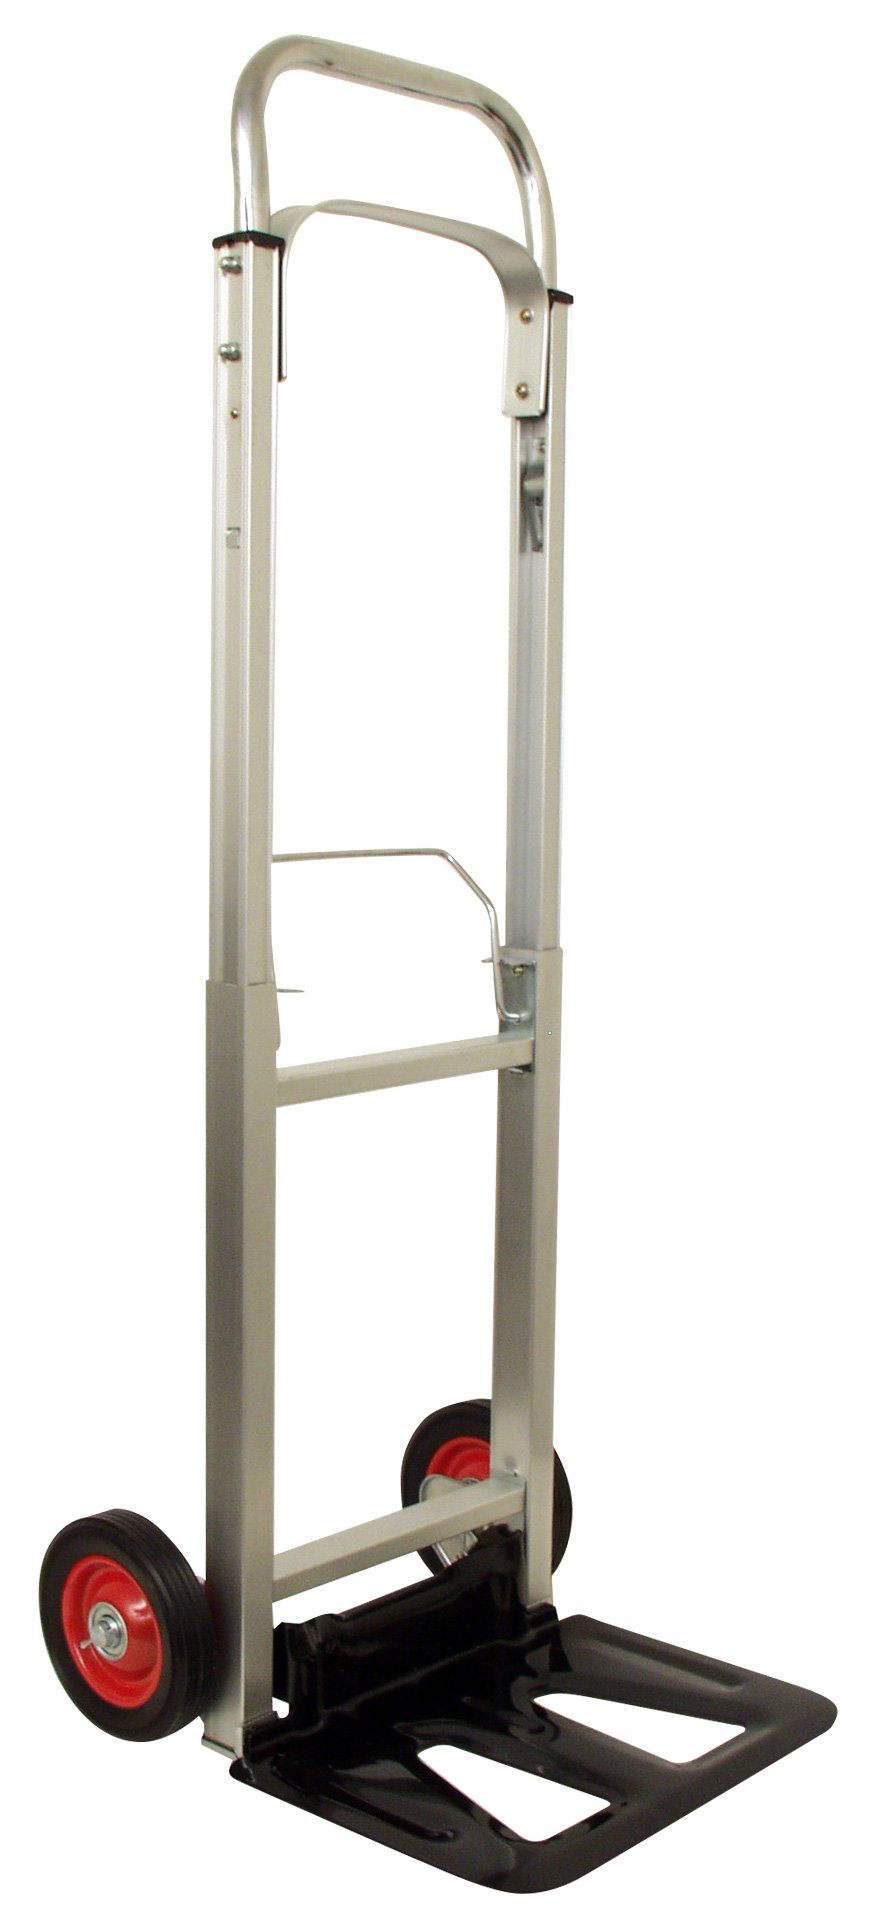 RWM Casters FW-95 Lightweight Folding Handi Cart, 220 Pound Capacity, 6'' Wheels, 43'' High Unfolded, 28.5'' High Collapsed